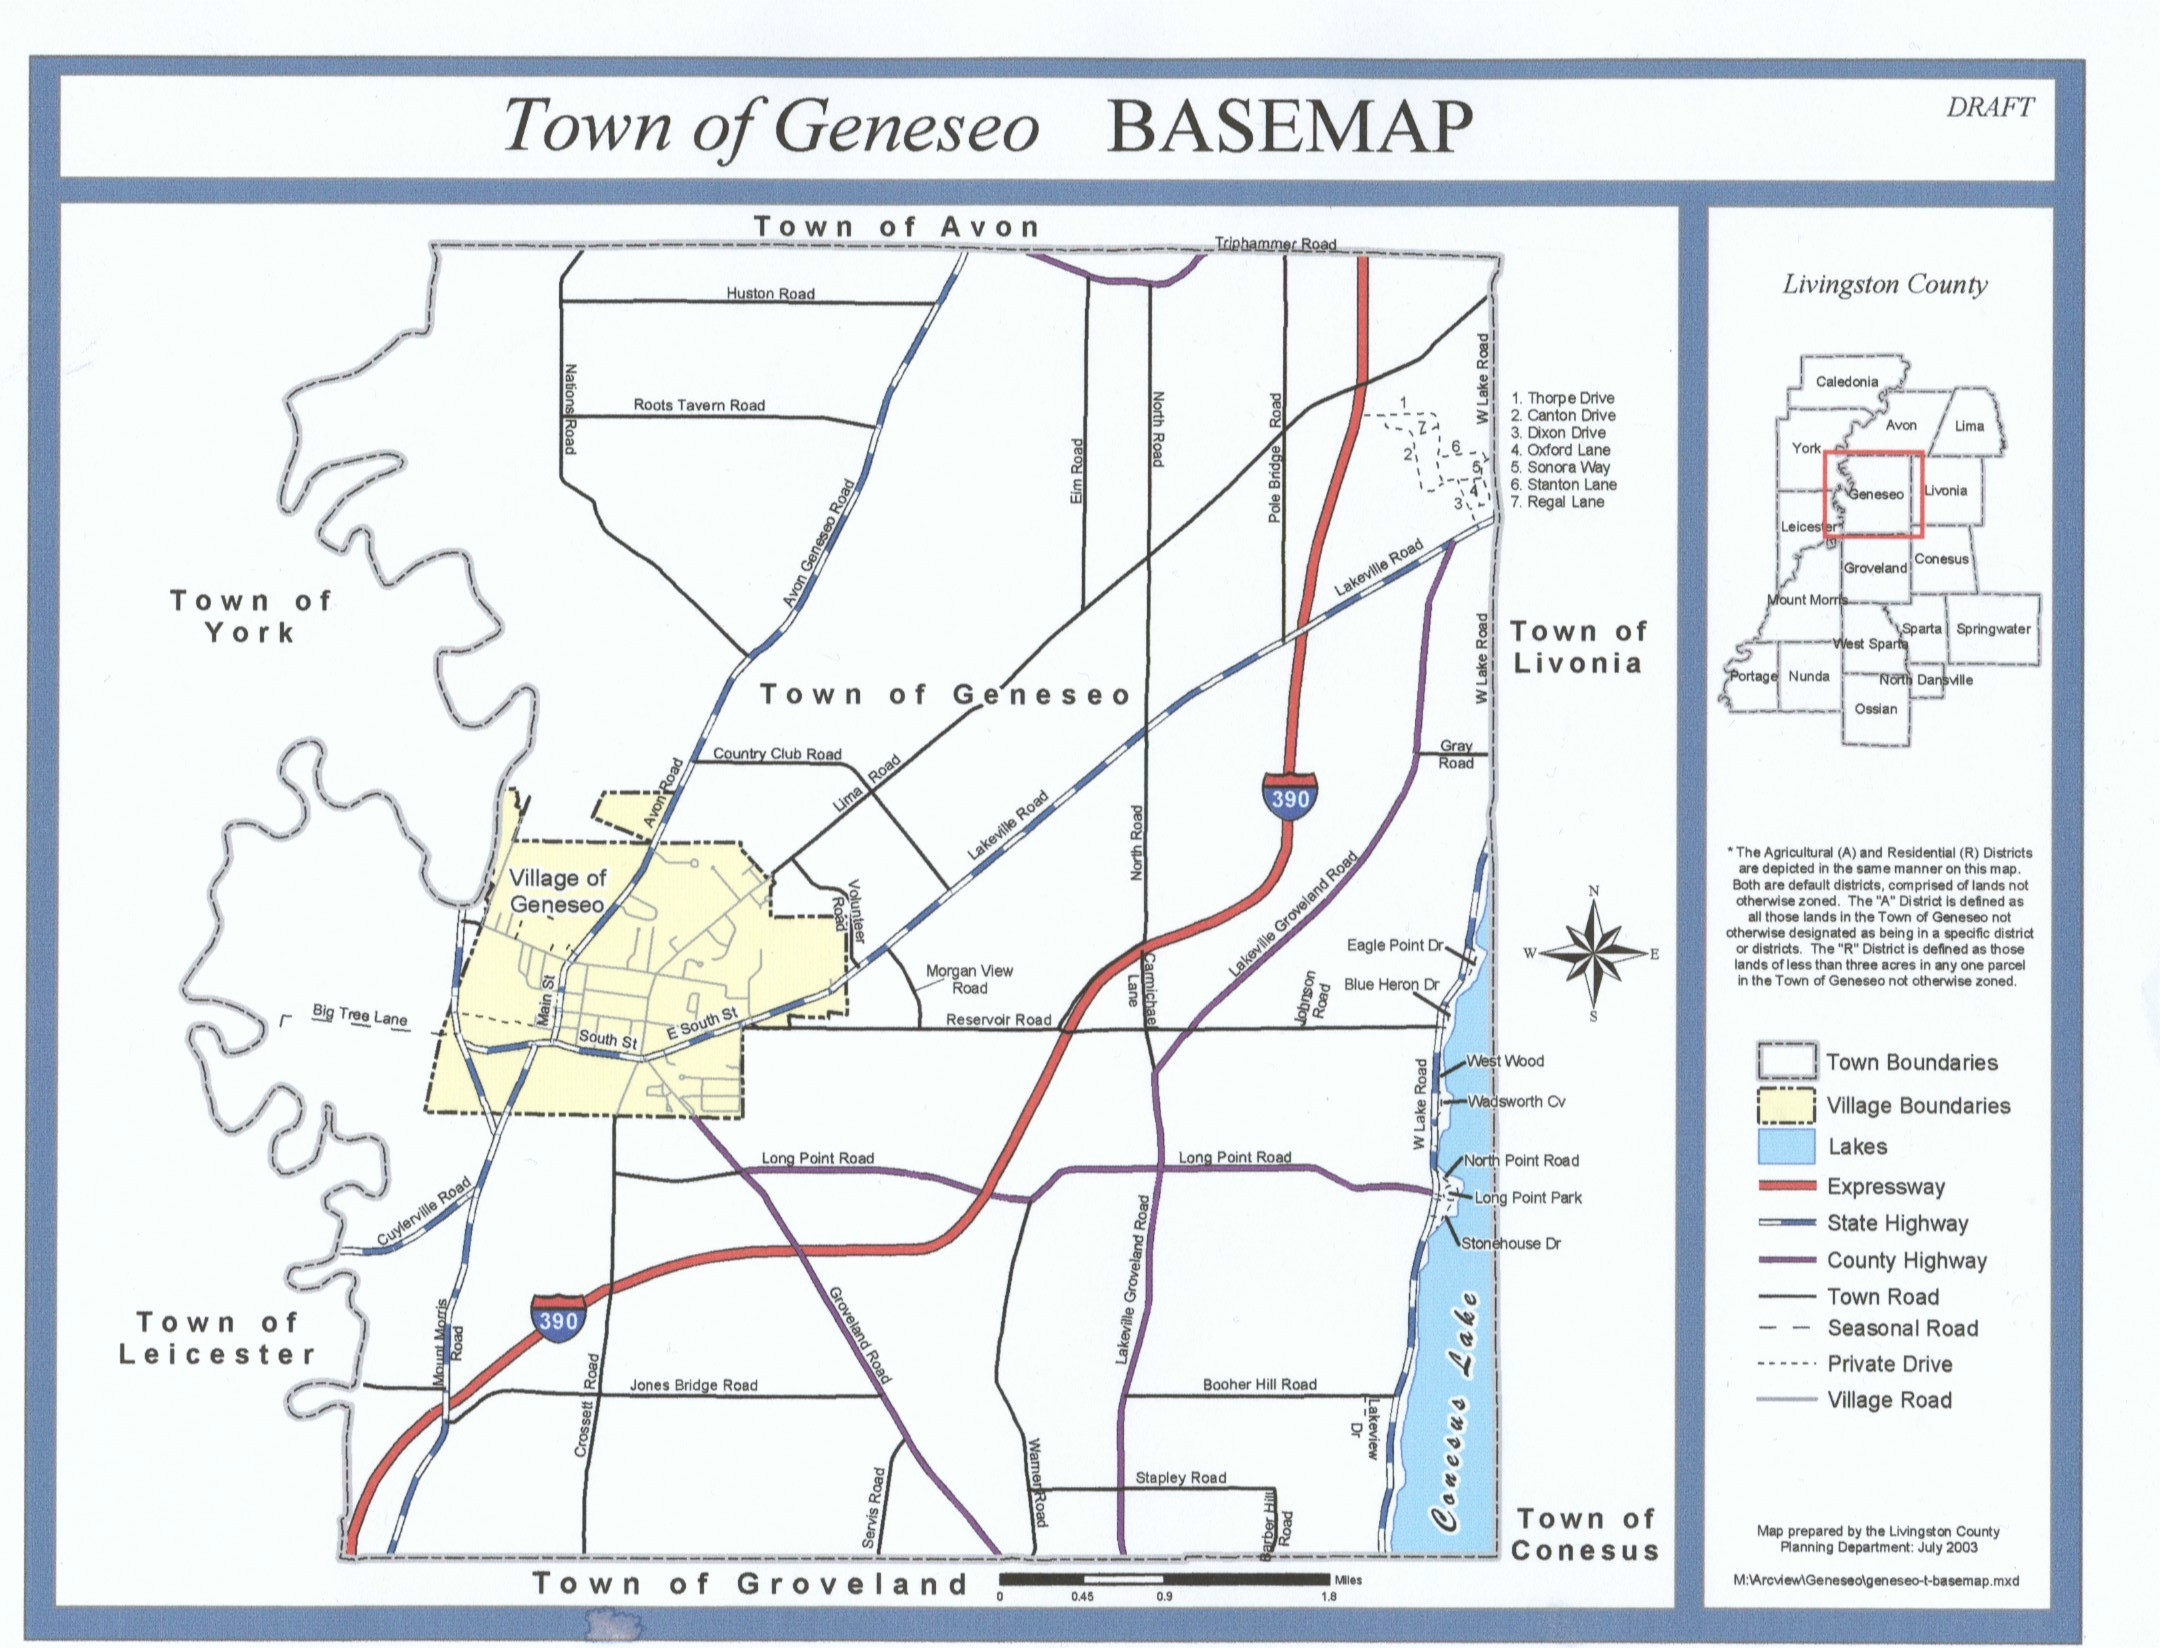 geneseo town map - geneseo ny • mappery